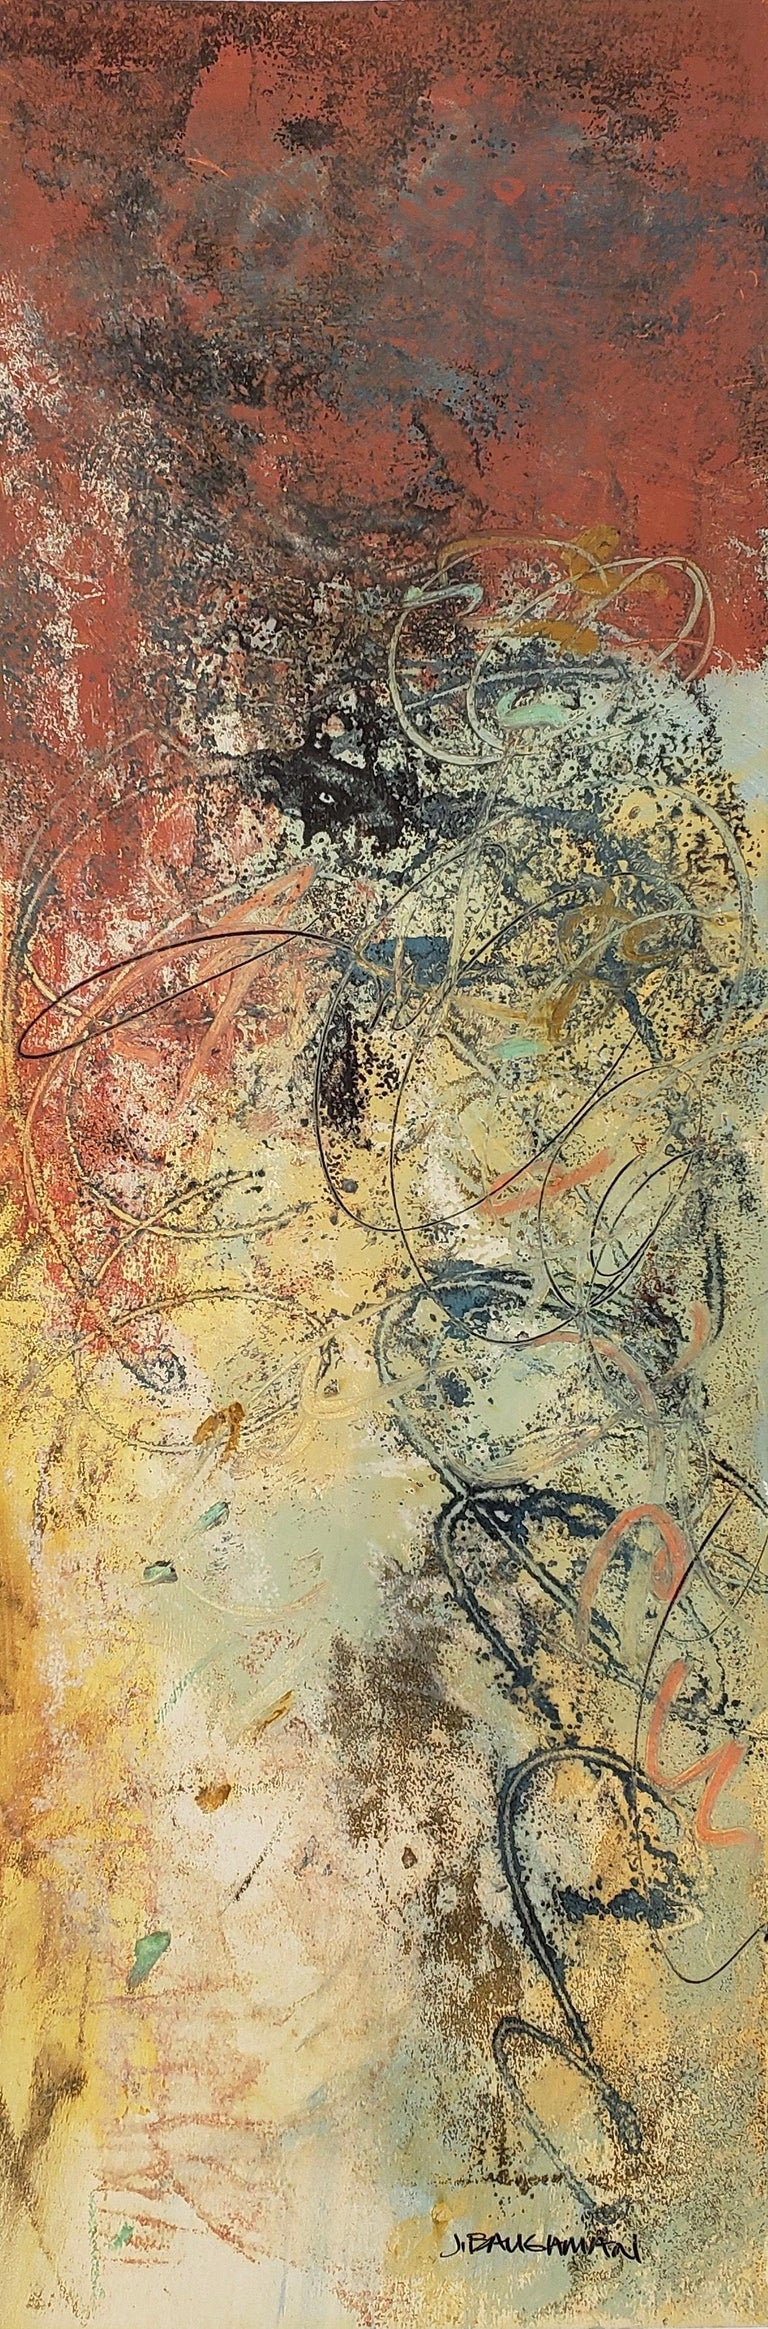 Baughman has developed a unique approach to painting, revealing generous dimensions and thoughtful textures. His deep layering of paints, oils, crayons and gold leafing create forms and planes expressive of the finest in contemporary design.